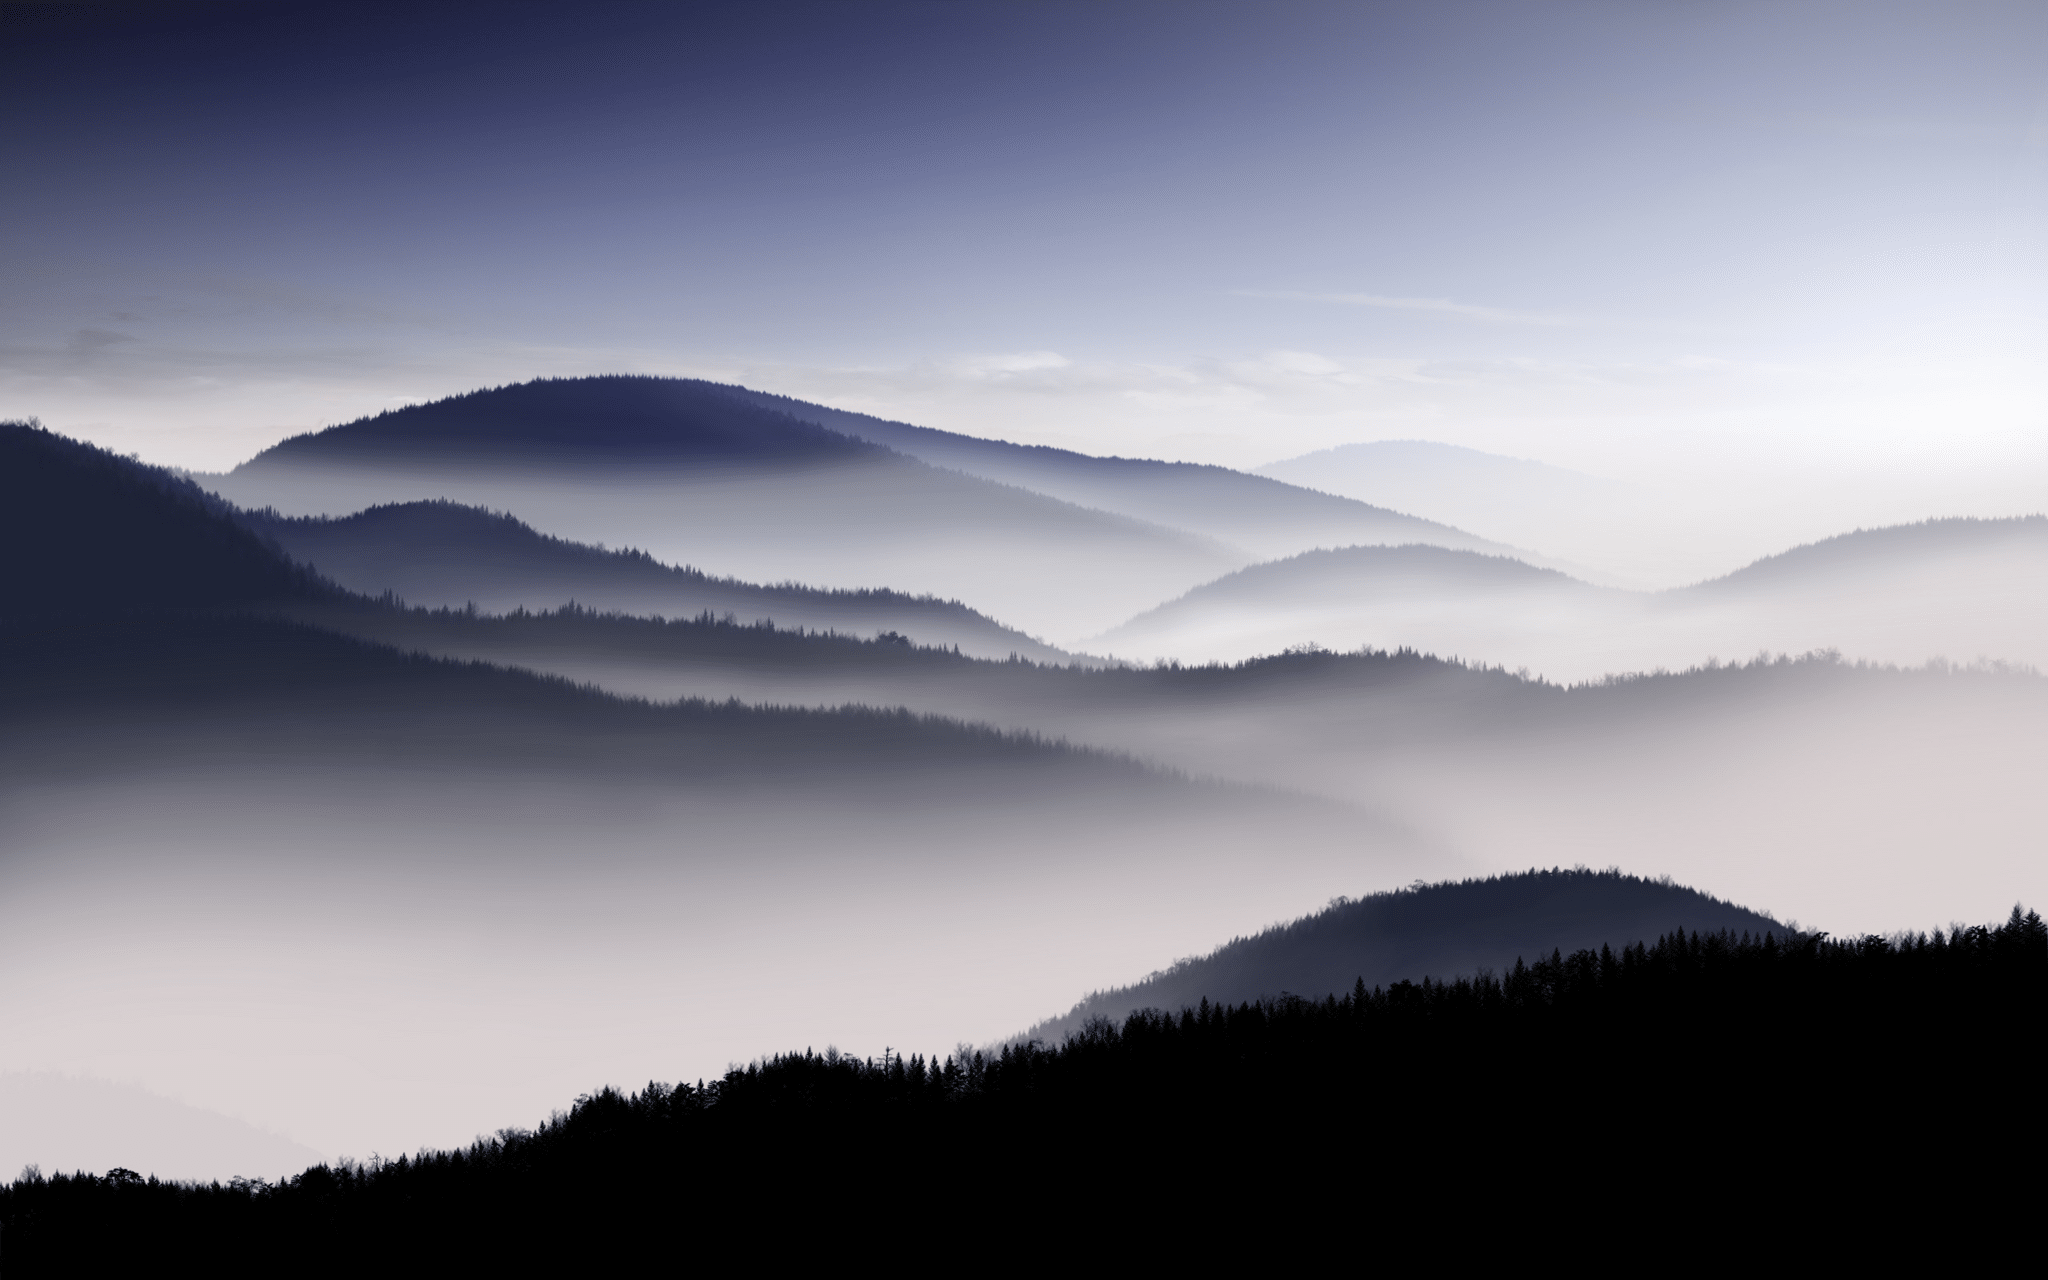 misty fog landscape wallpapers - photo #15